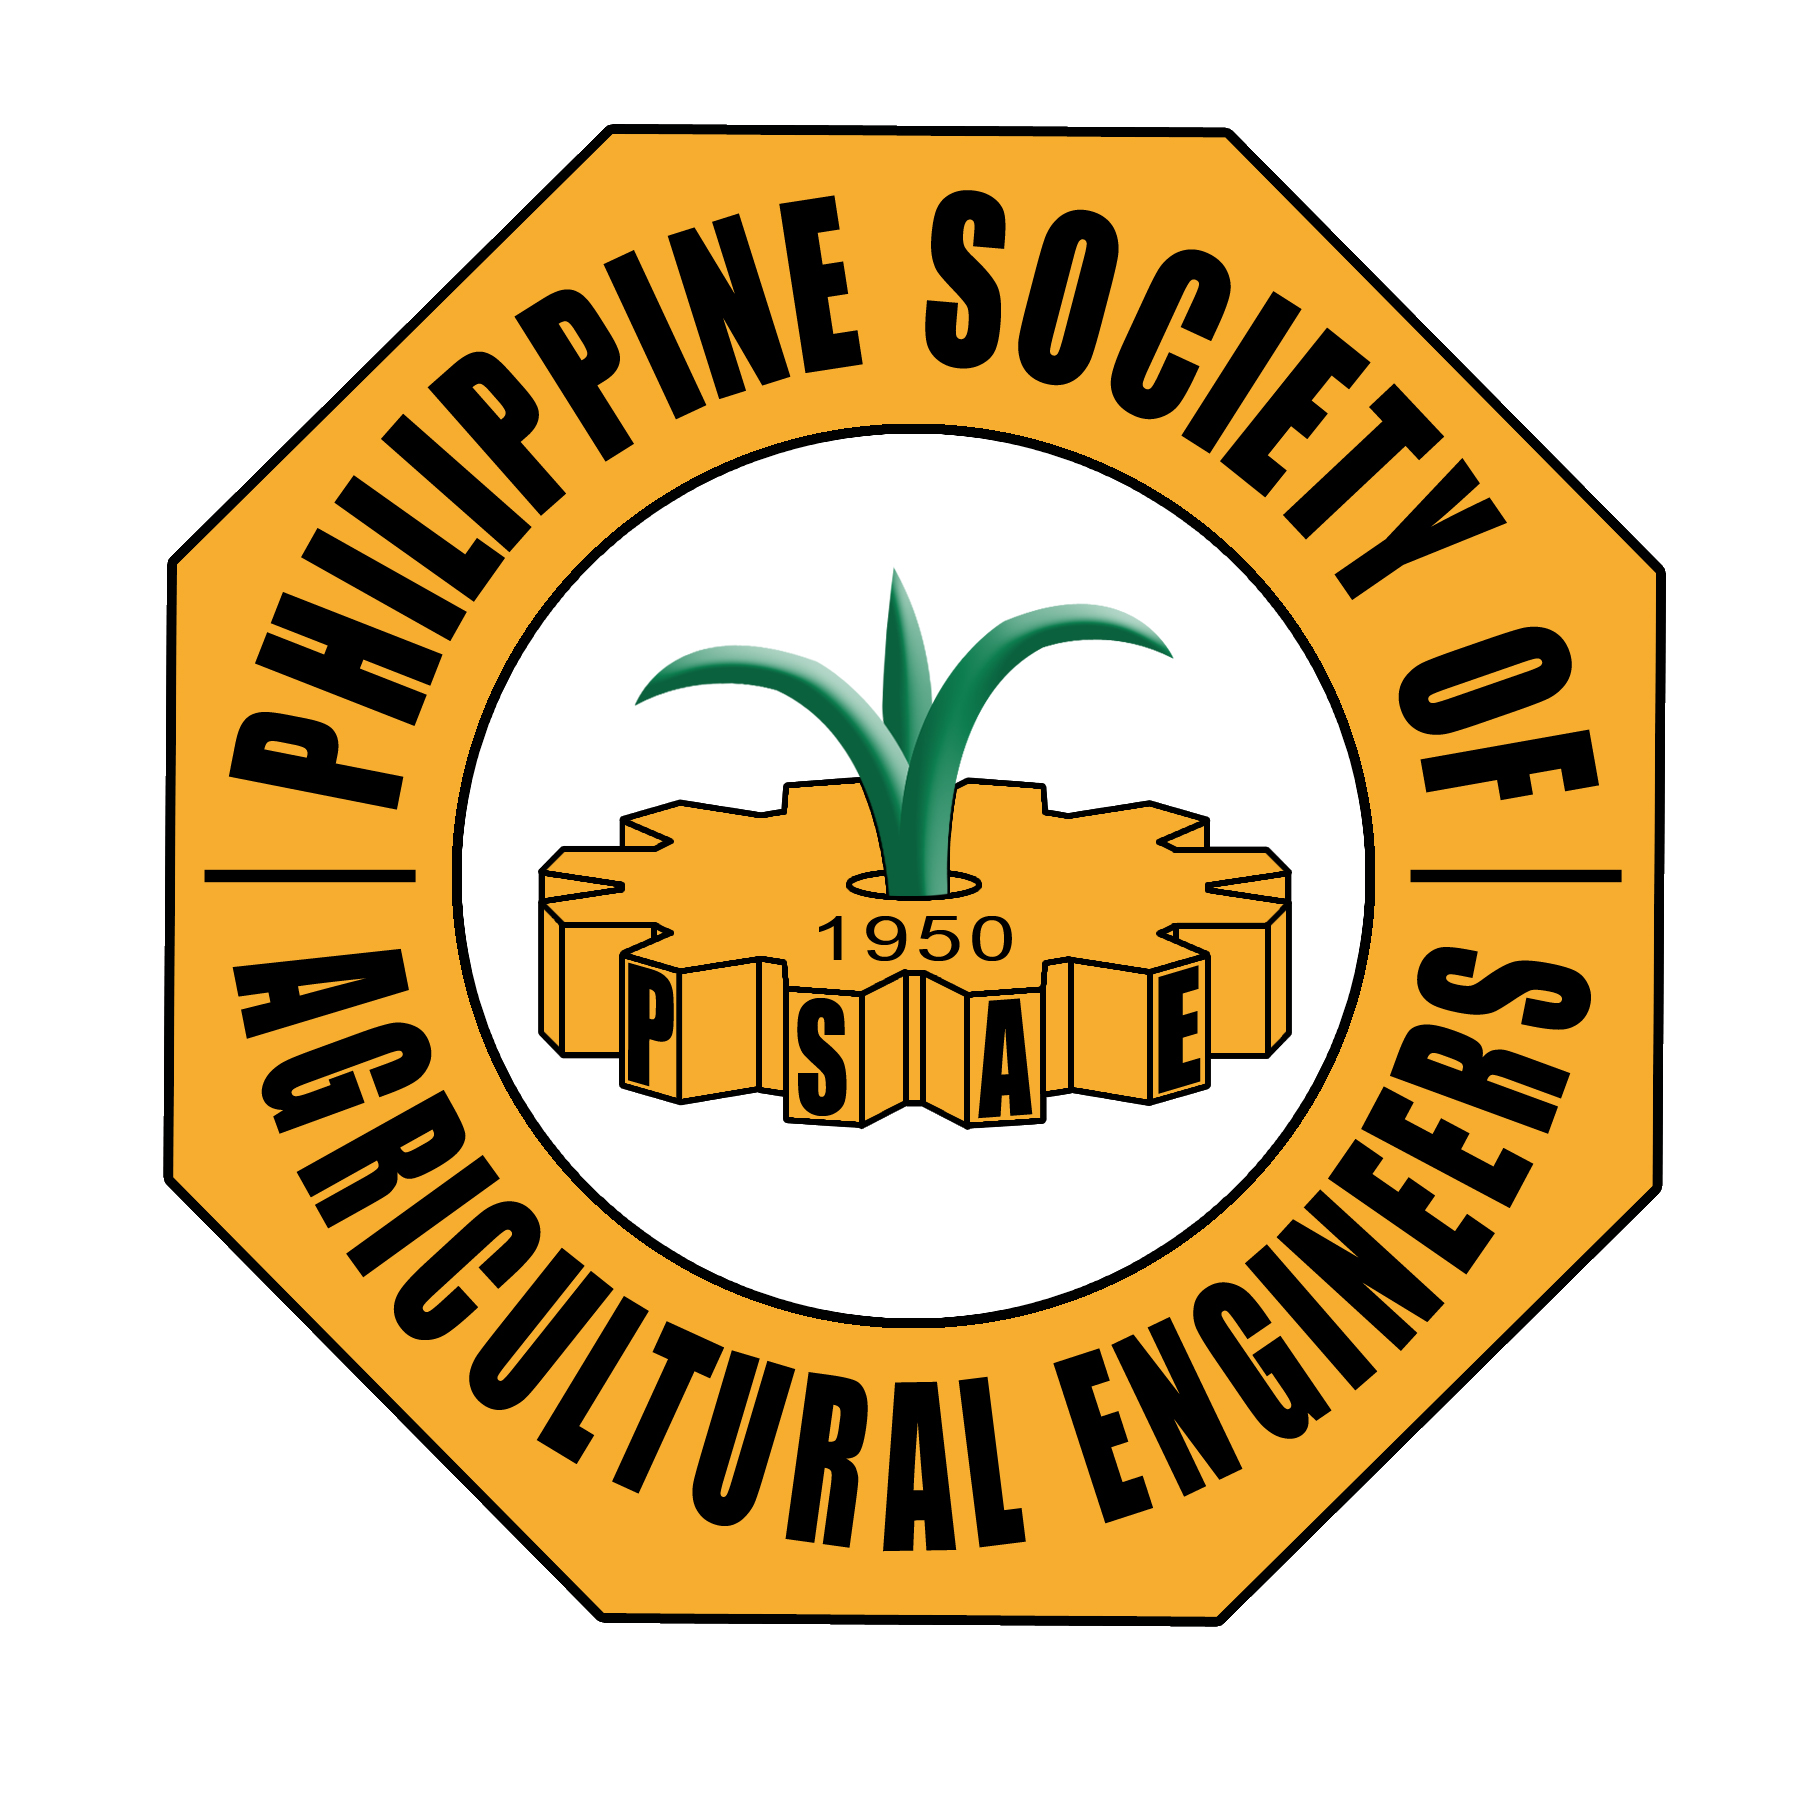 Farming clipart agriculturist. Philippine society of agricultural